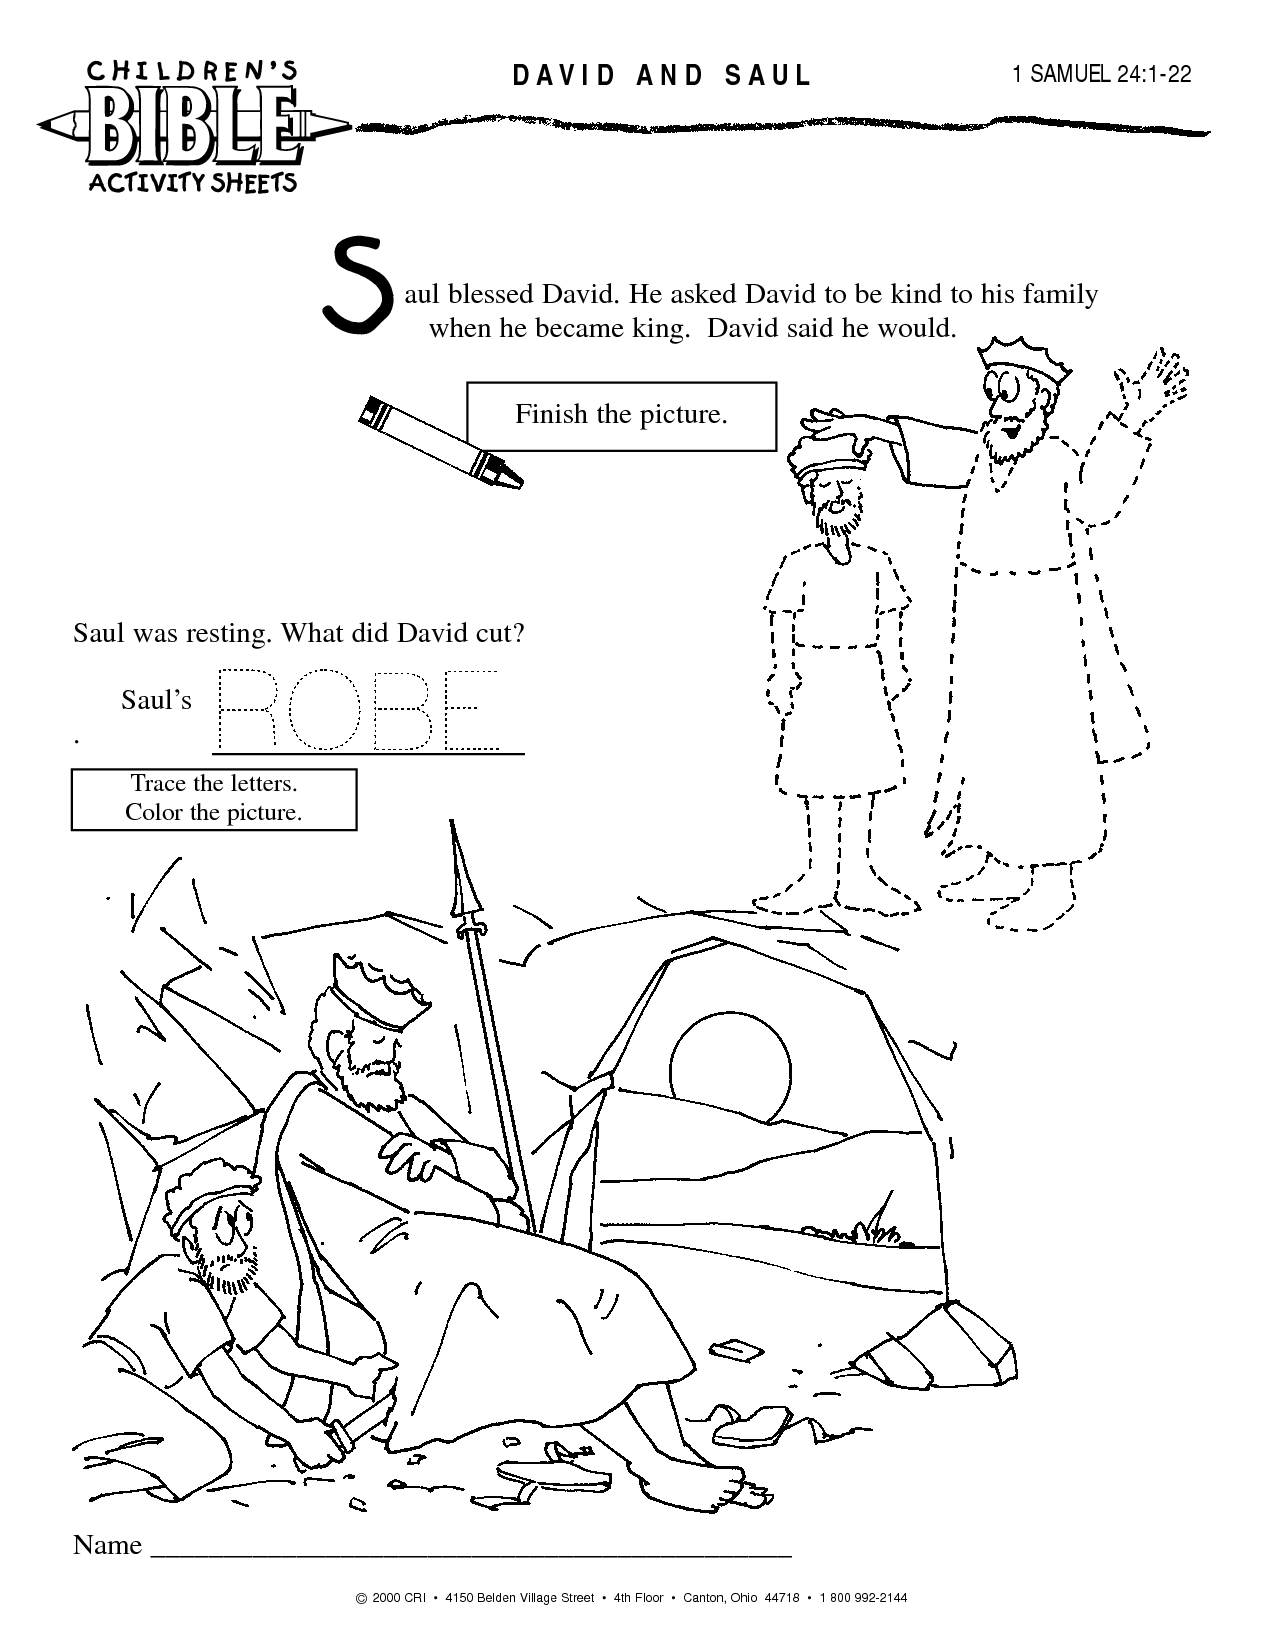 Coloring pages for jonathan and david - Saul Hides In Cave Preschool Show Me More David Saul Cave Colouring Pages